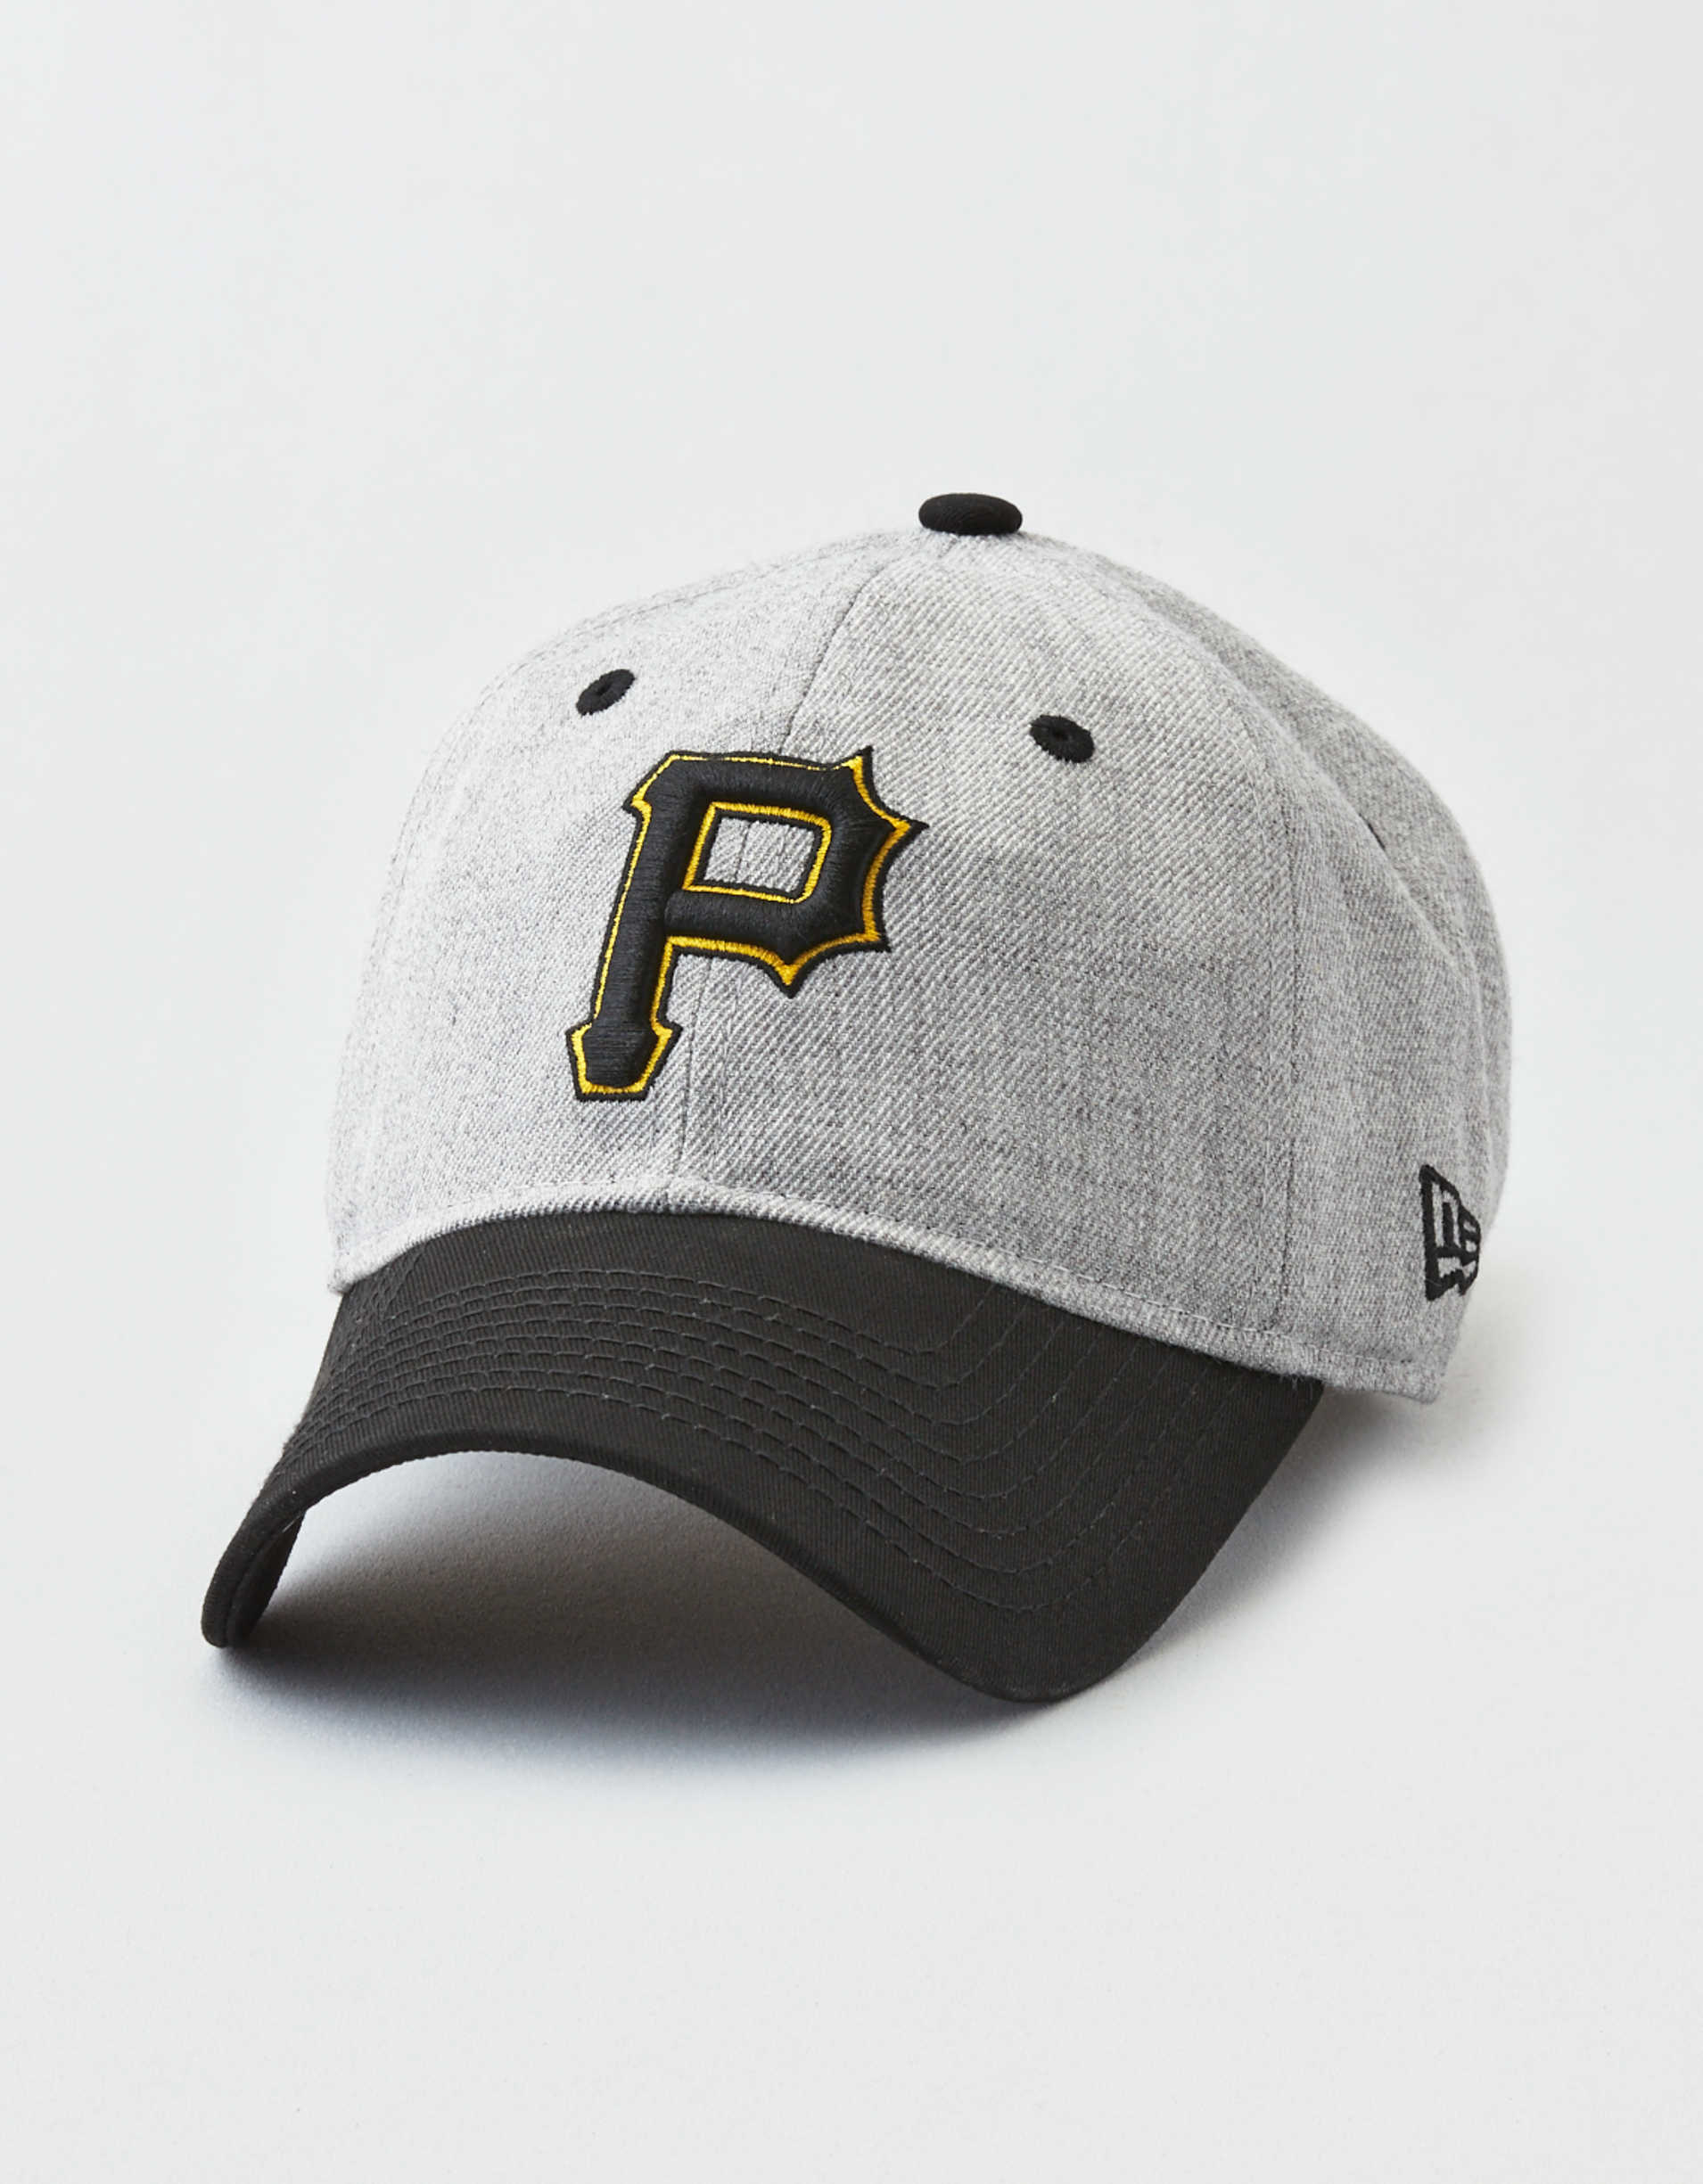 Limited-Edition New Era X Tailgate Pittsburgh Baseball Hat